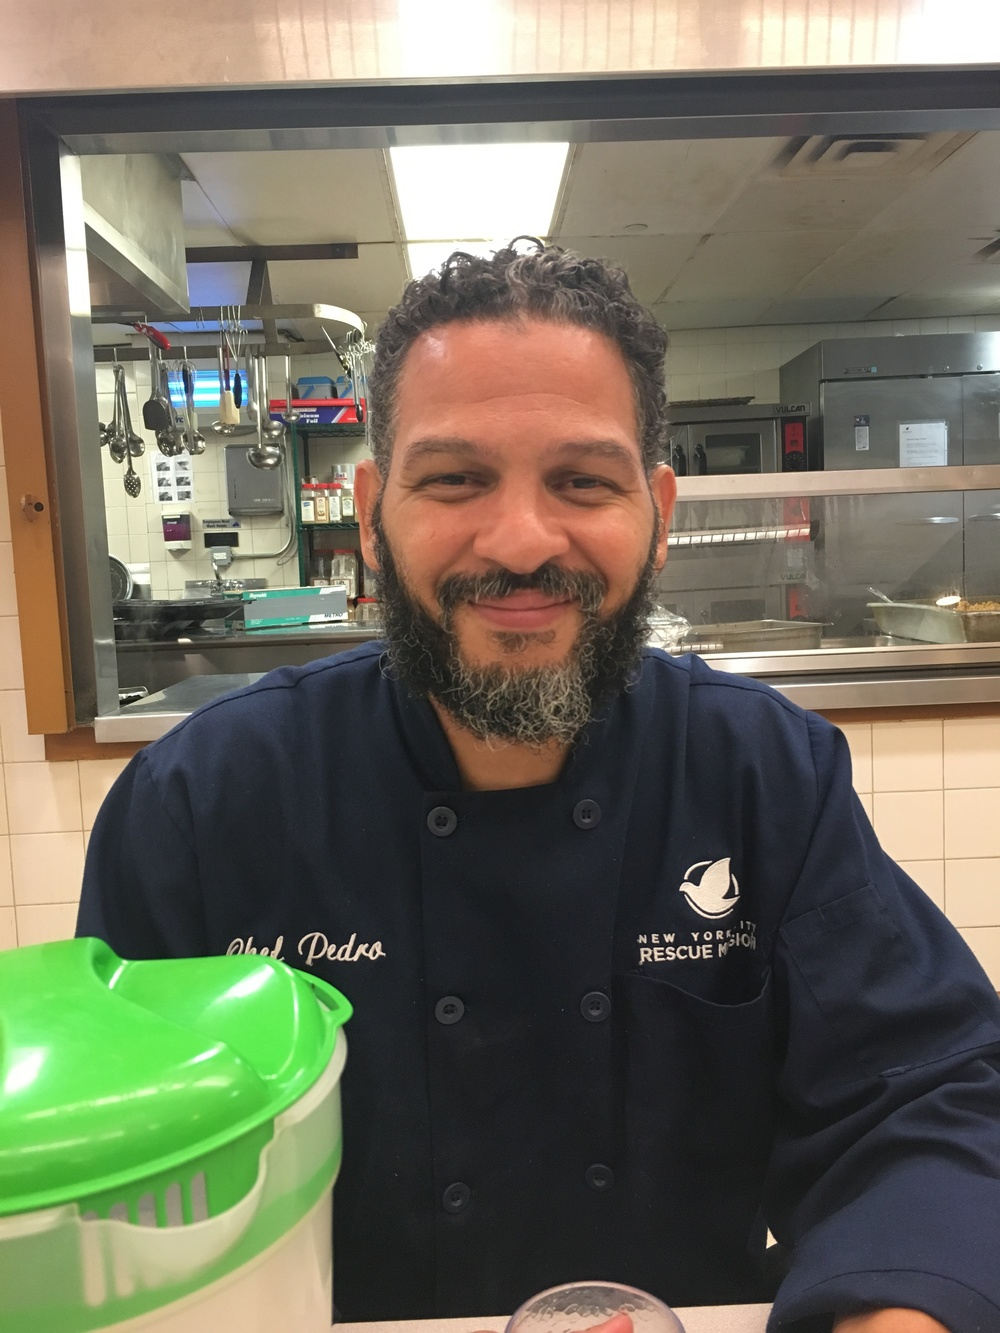 This is Pedro Rodriguez, a professionally trained chef serving as lead chef at the NY Rescue Mission and deacon of mercy at Recovery House of Worship